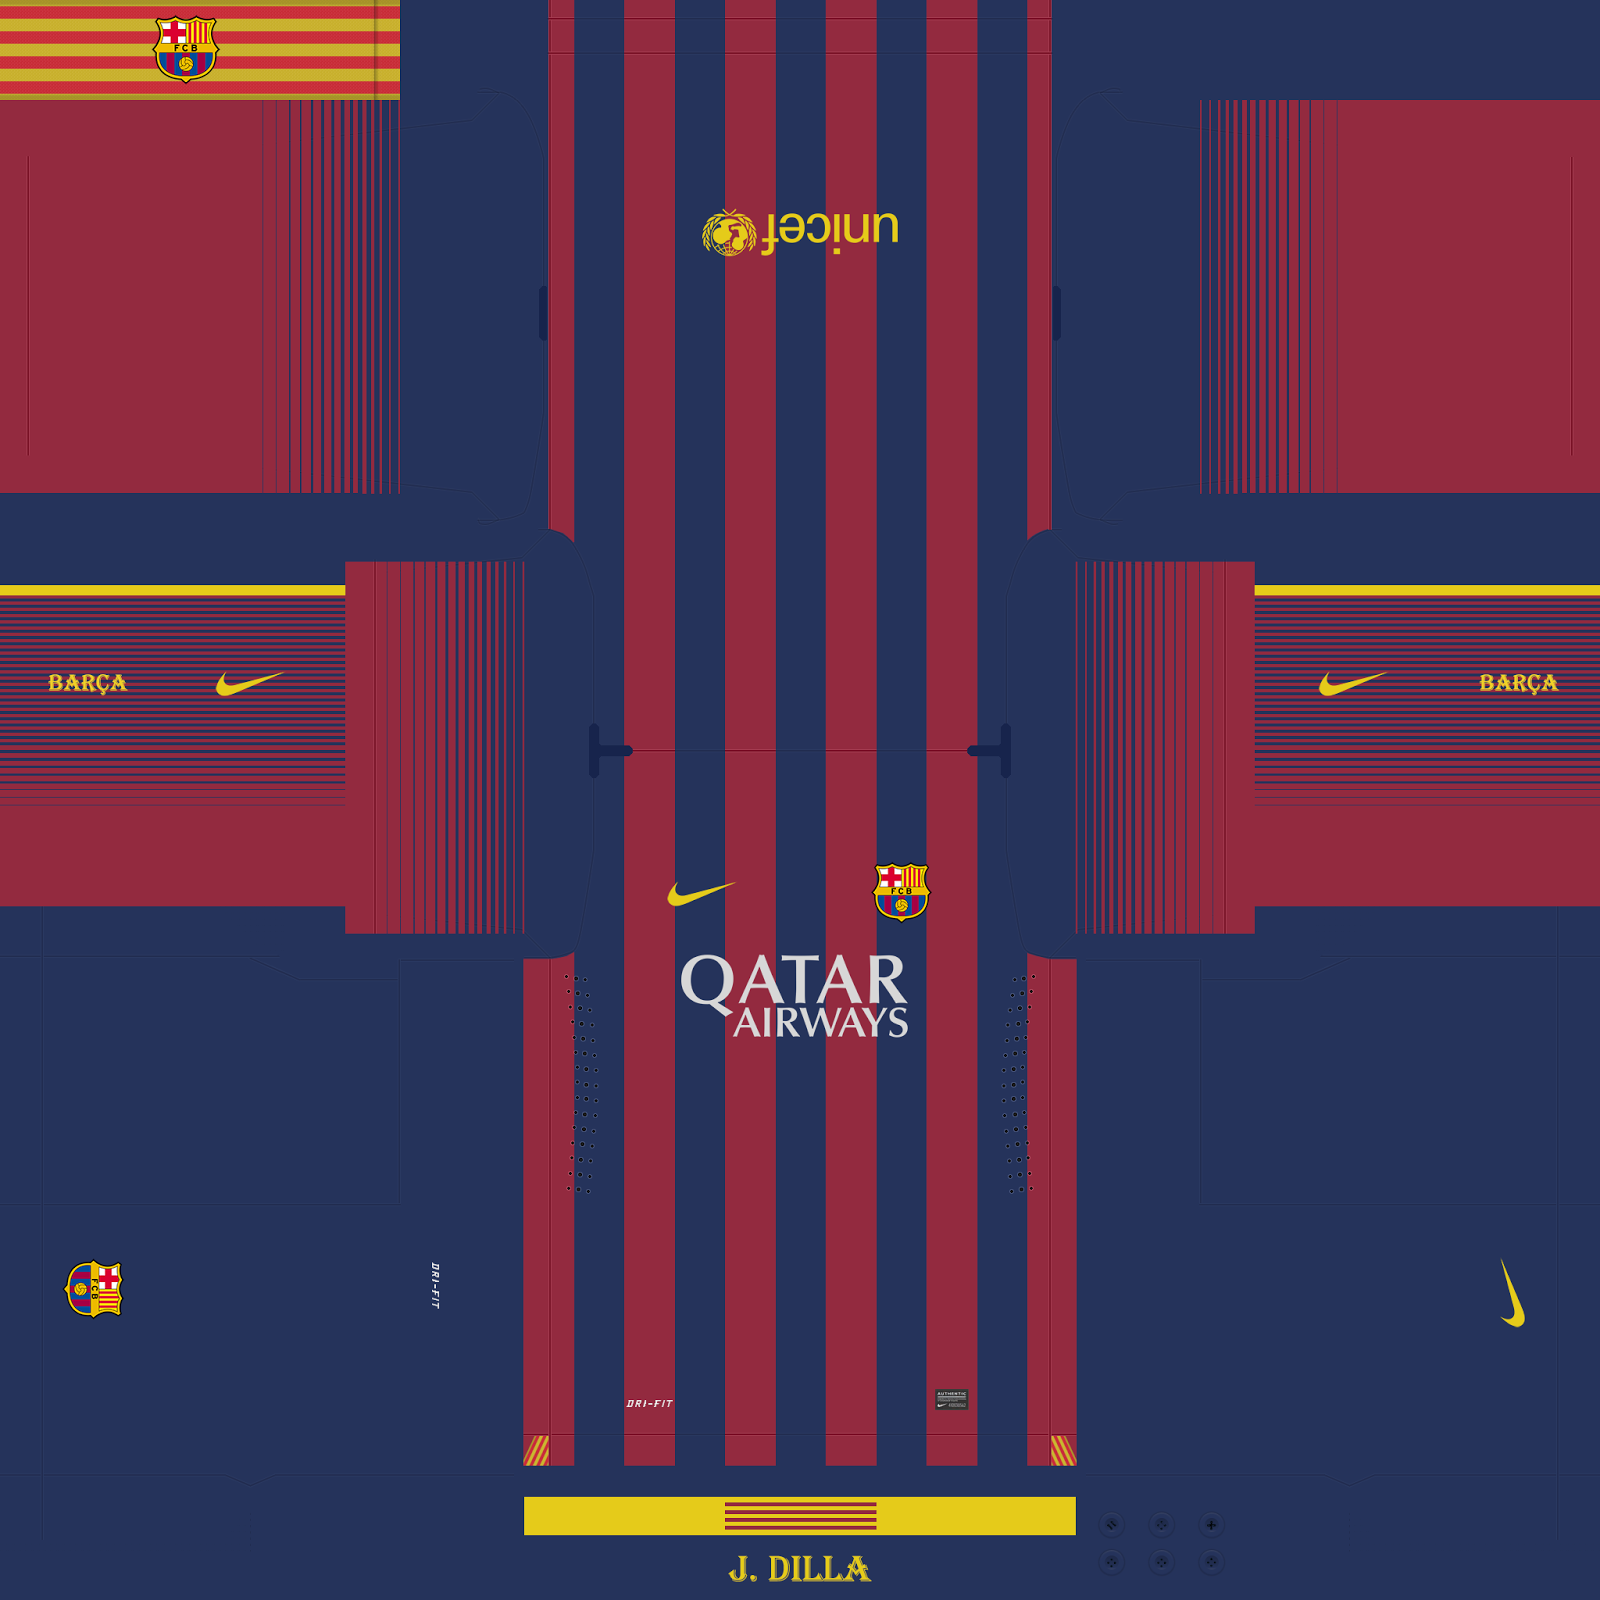 512X512 DREAM LEAGUE SOCCER KITS FCB image galleries - imageKB.com